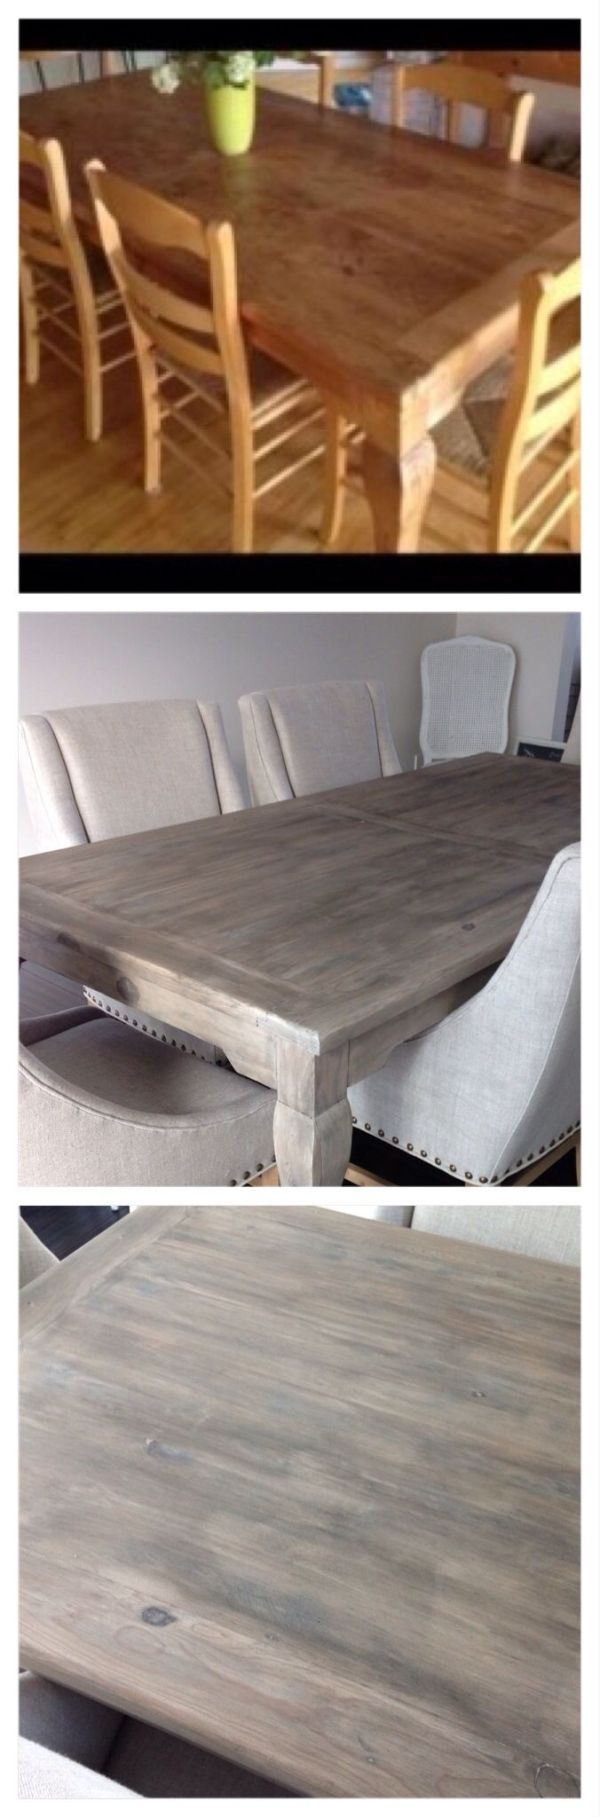 DIY Restoration Hardware Finish. Craigslist Table: Stripped, Sanded,  Bleached (I Used Part 52